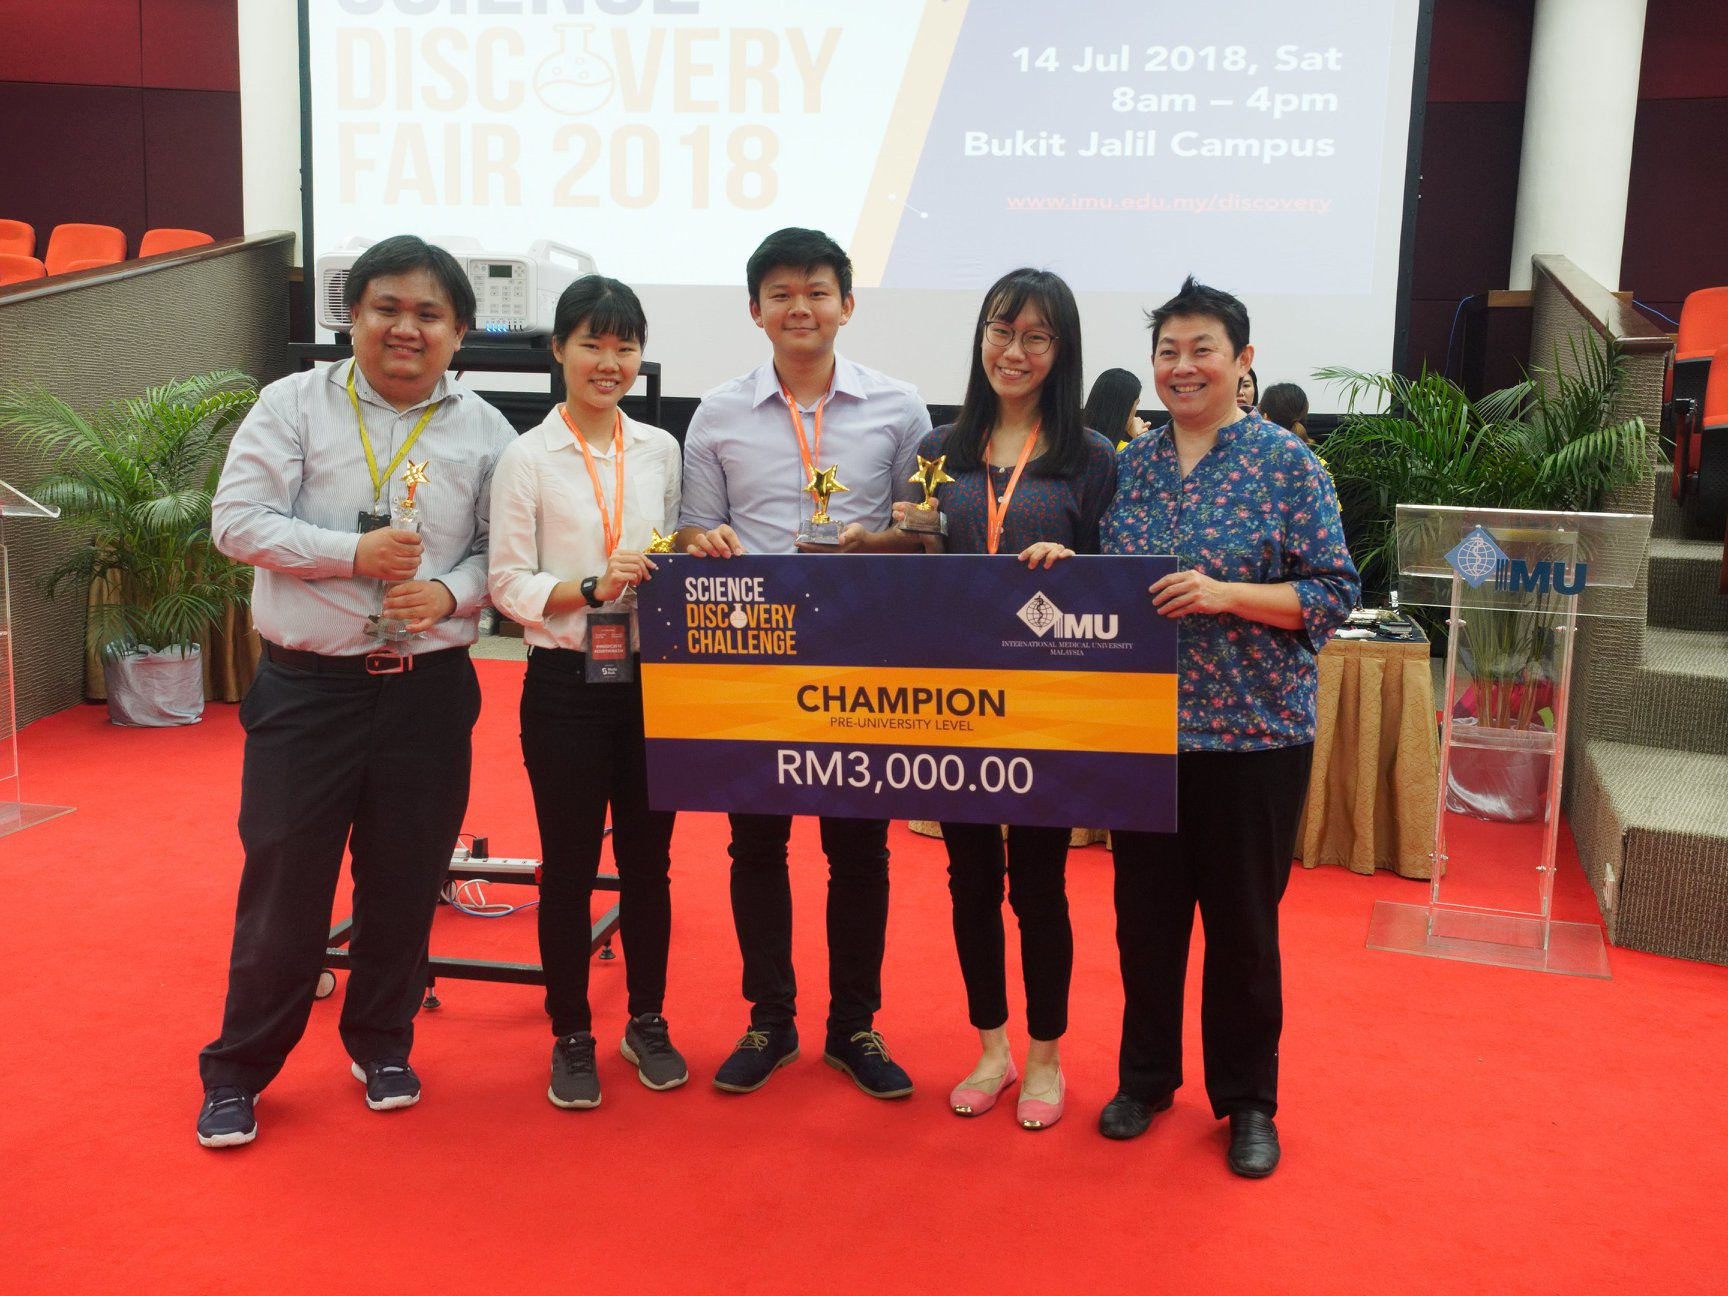 coursesmalaysia-mckl-news-IMU-Champion-2018